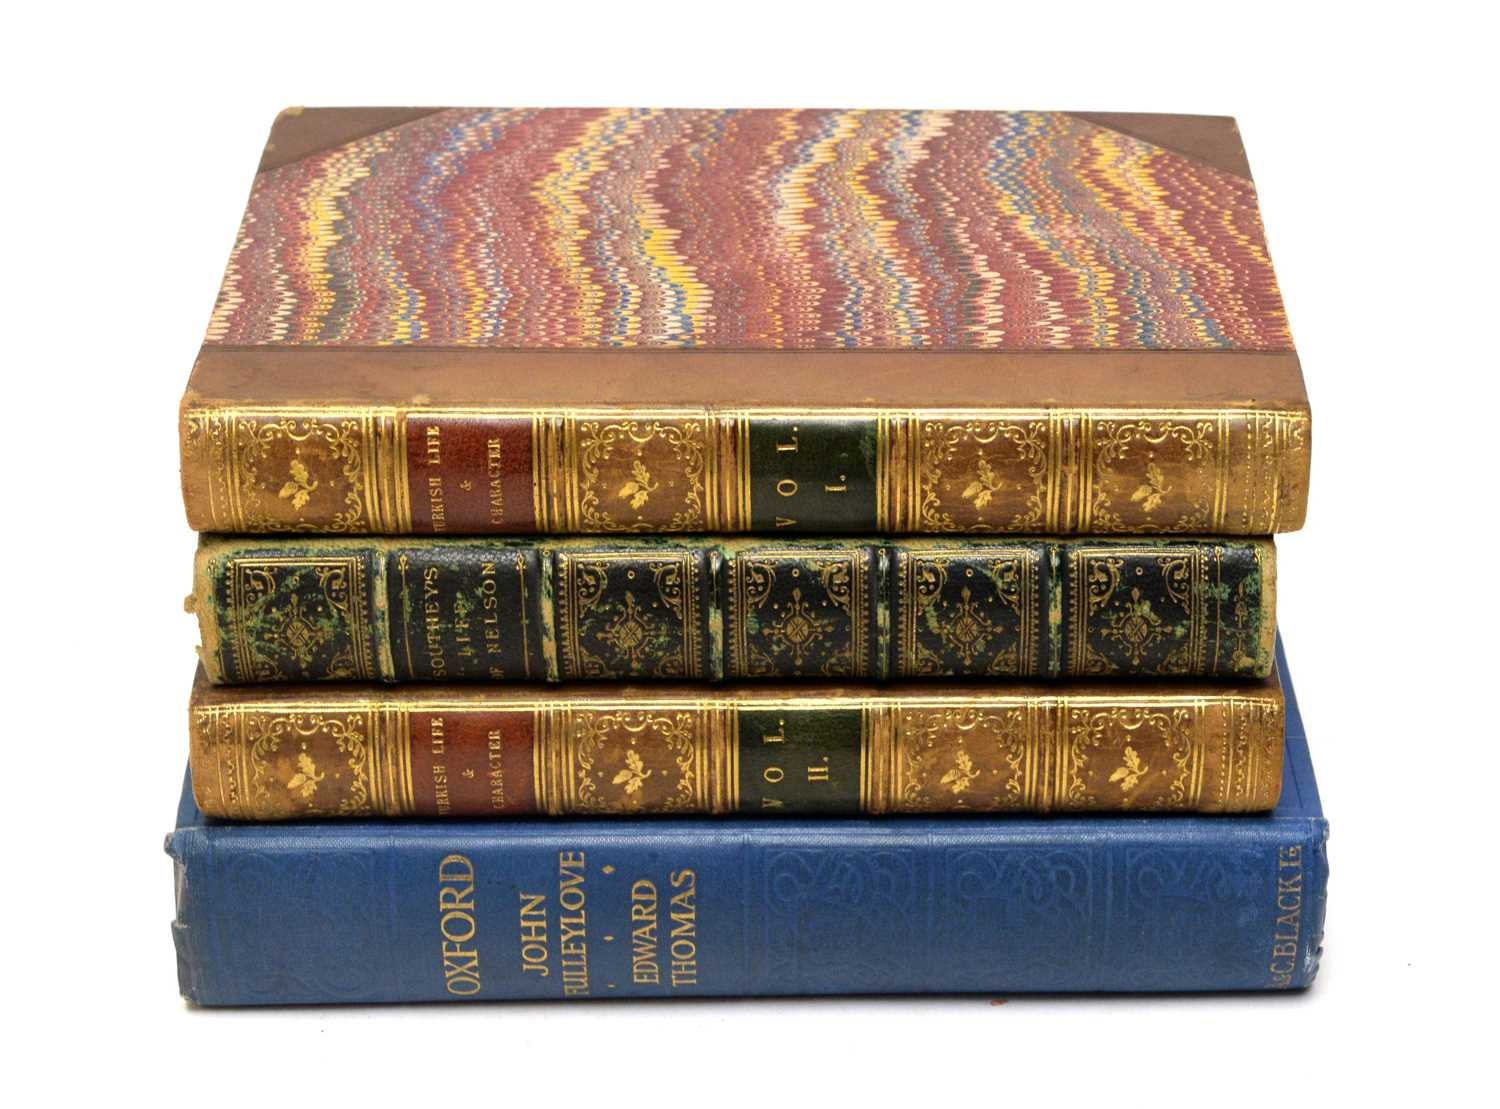 Southey (Robert), The Life of Nelson, and two other books